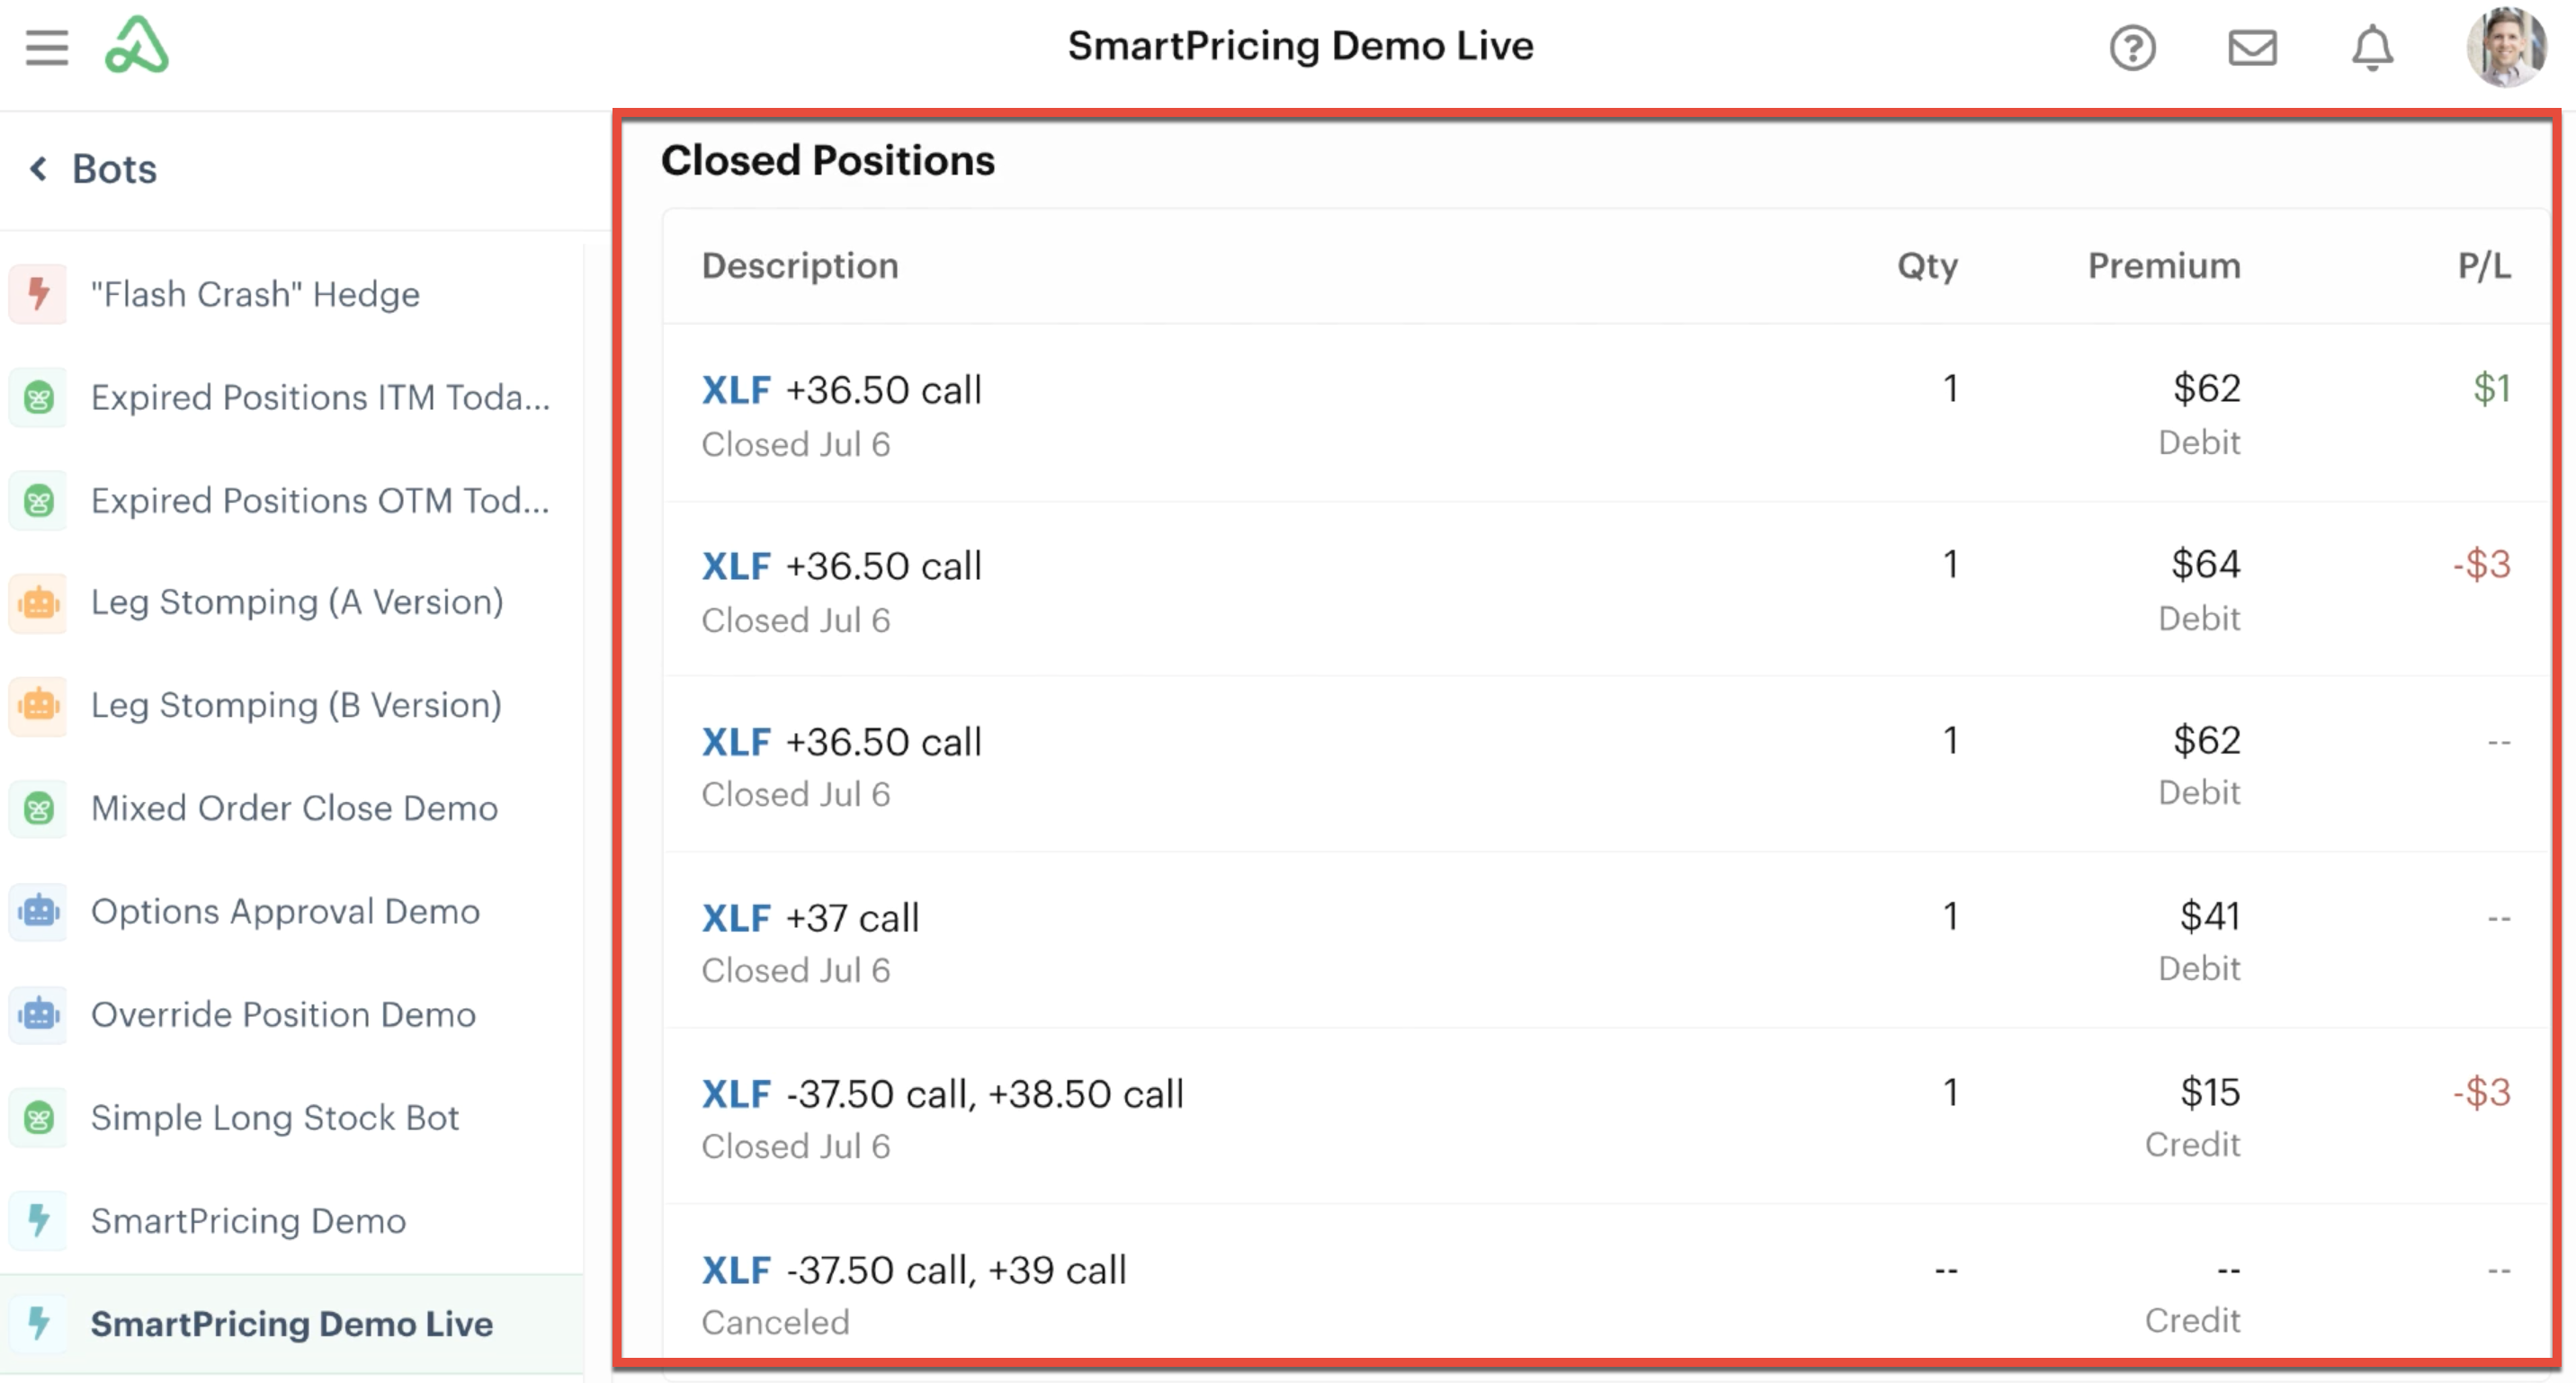 Position statement with position summary of closed orders